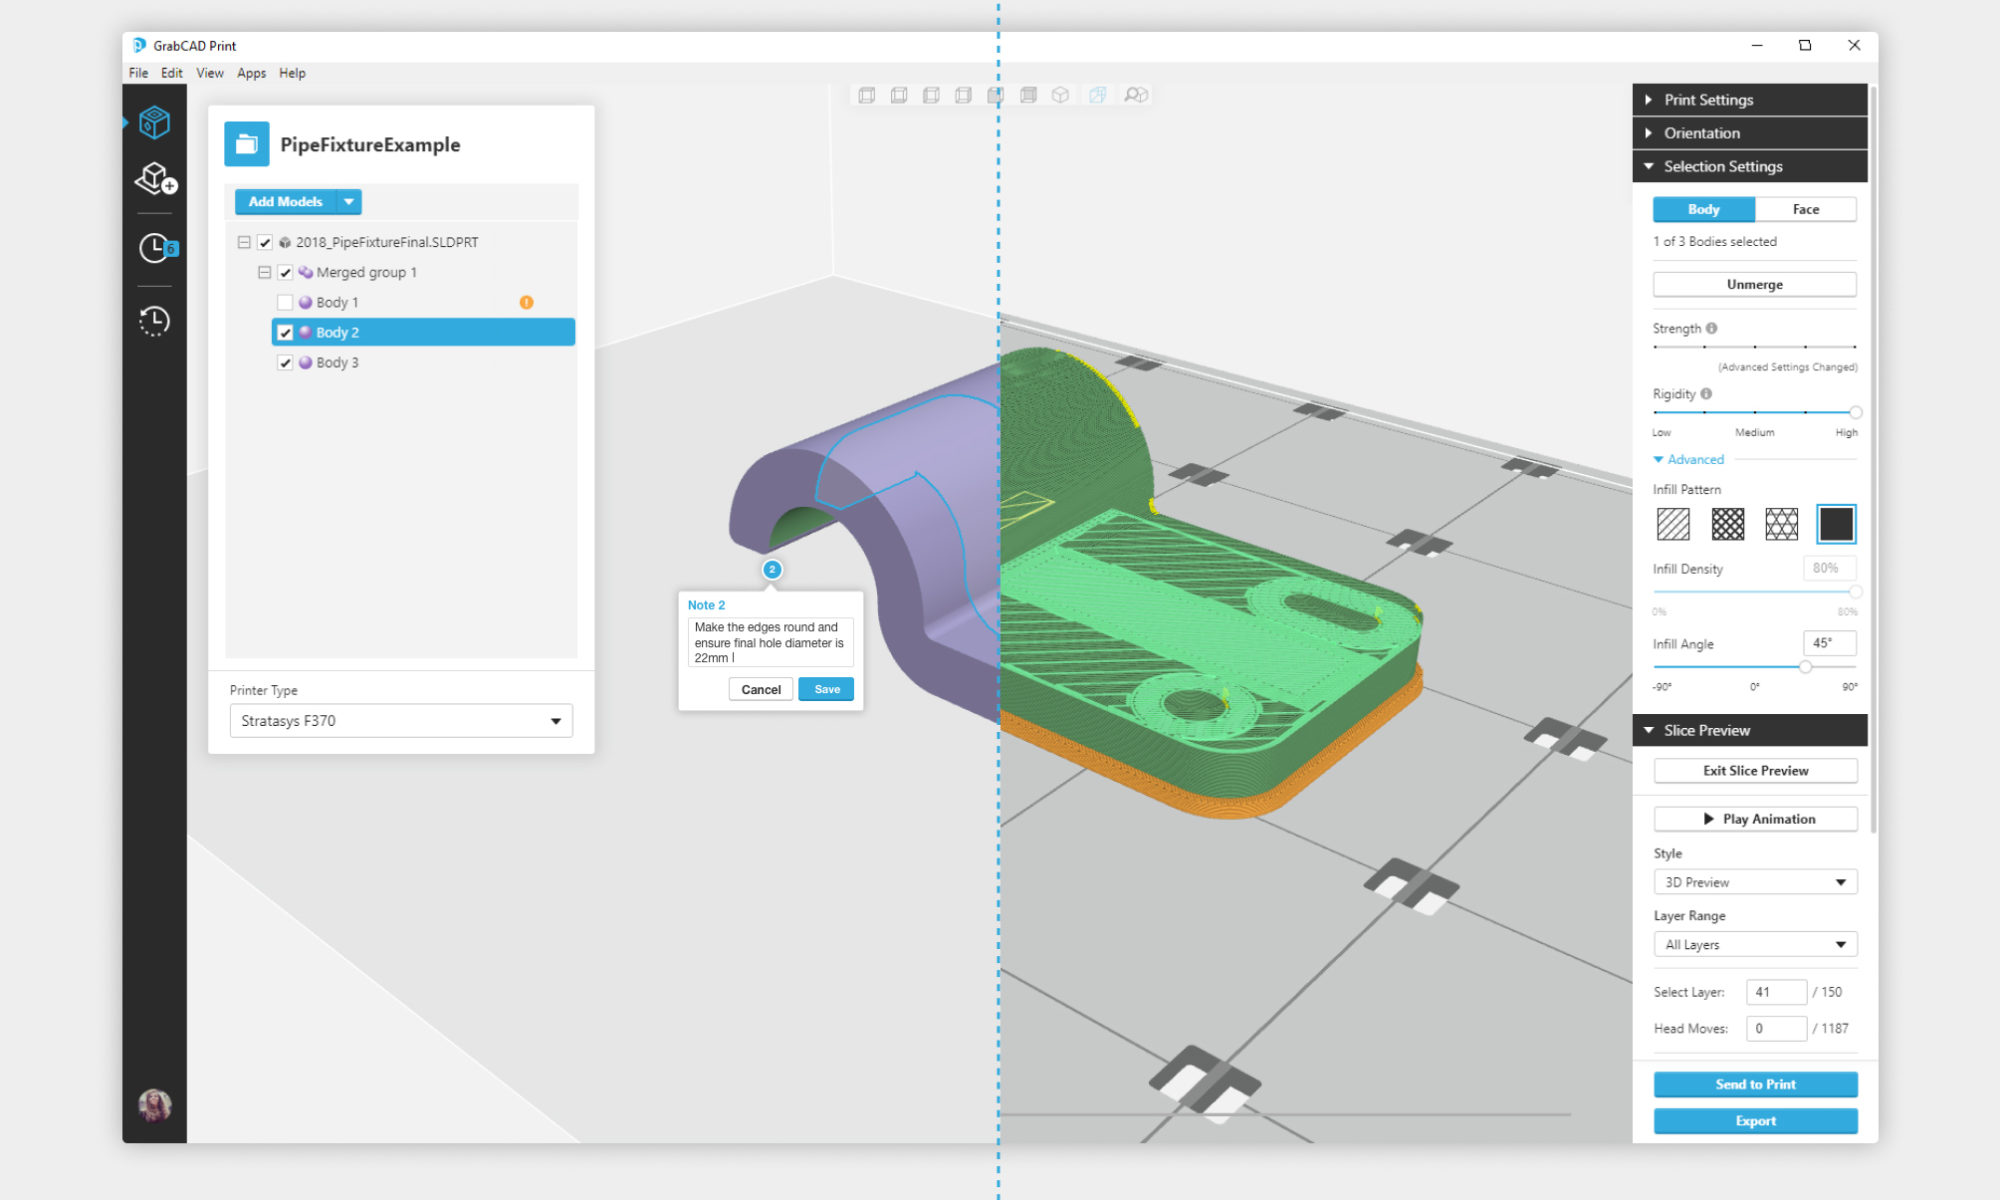 GrabCAD Advanced FDM eliminates the CAD-to-STL conversion process.